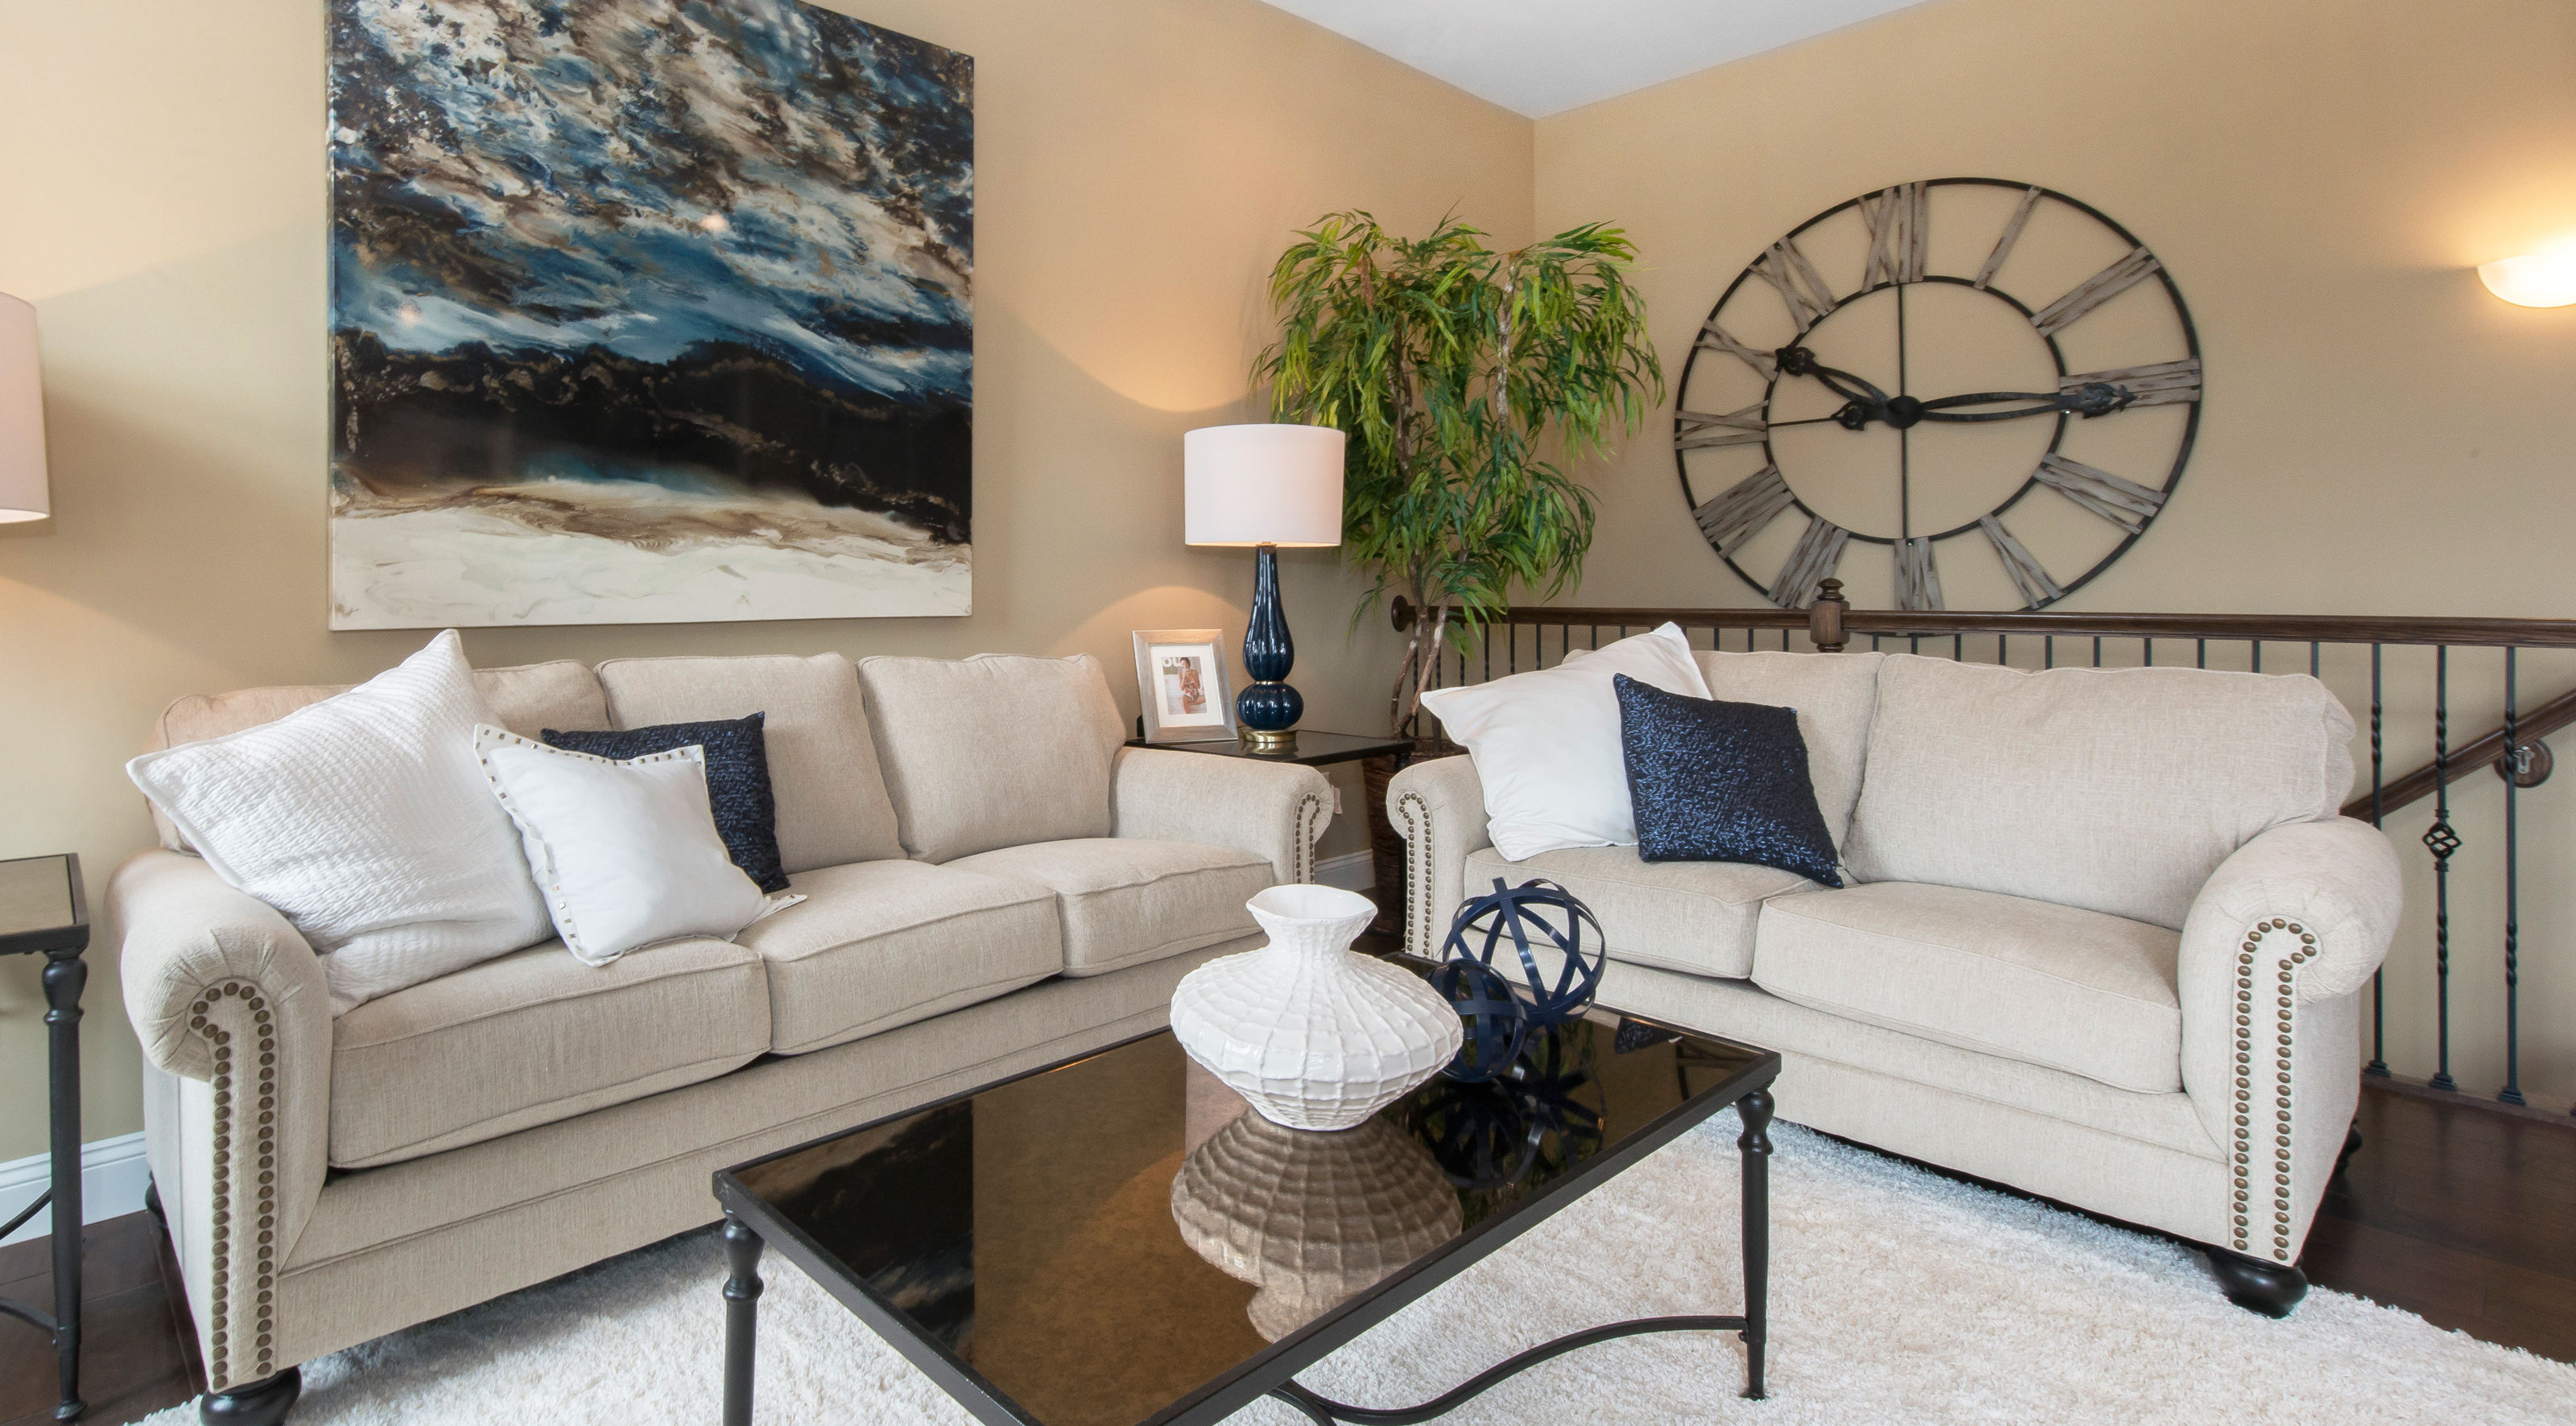 lombard-large-familyRoom02